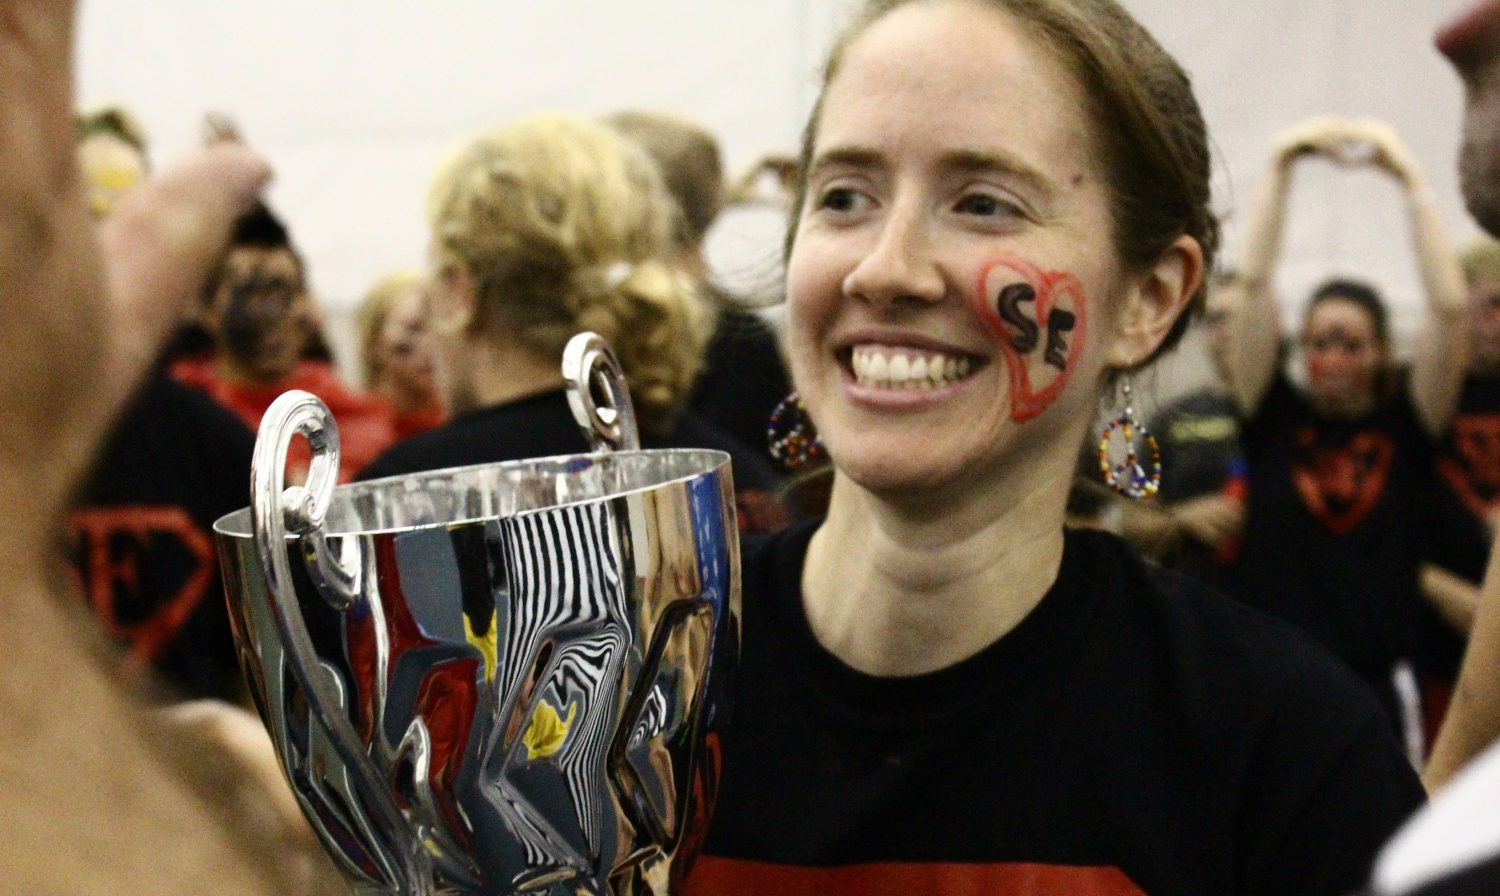 Schultze-Eldersveld wins Cup of Perspective after fourth-place finish